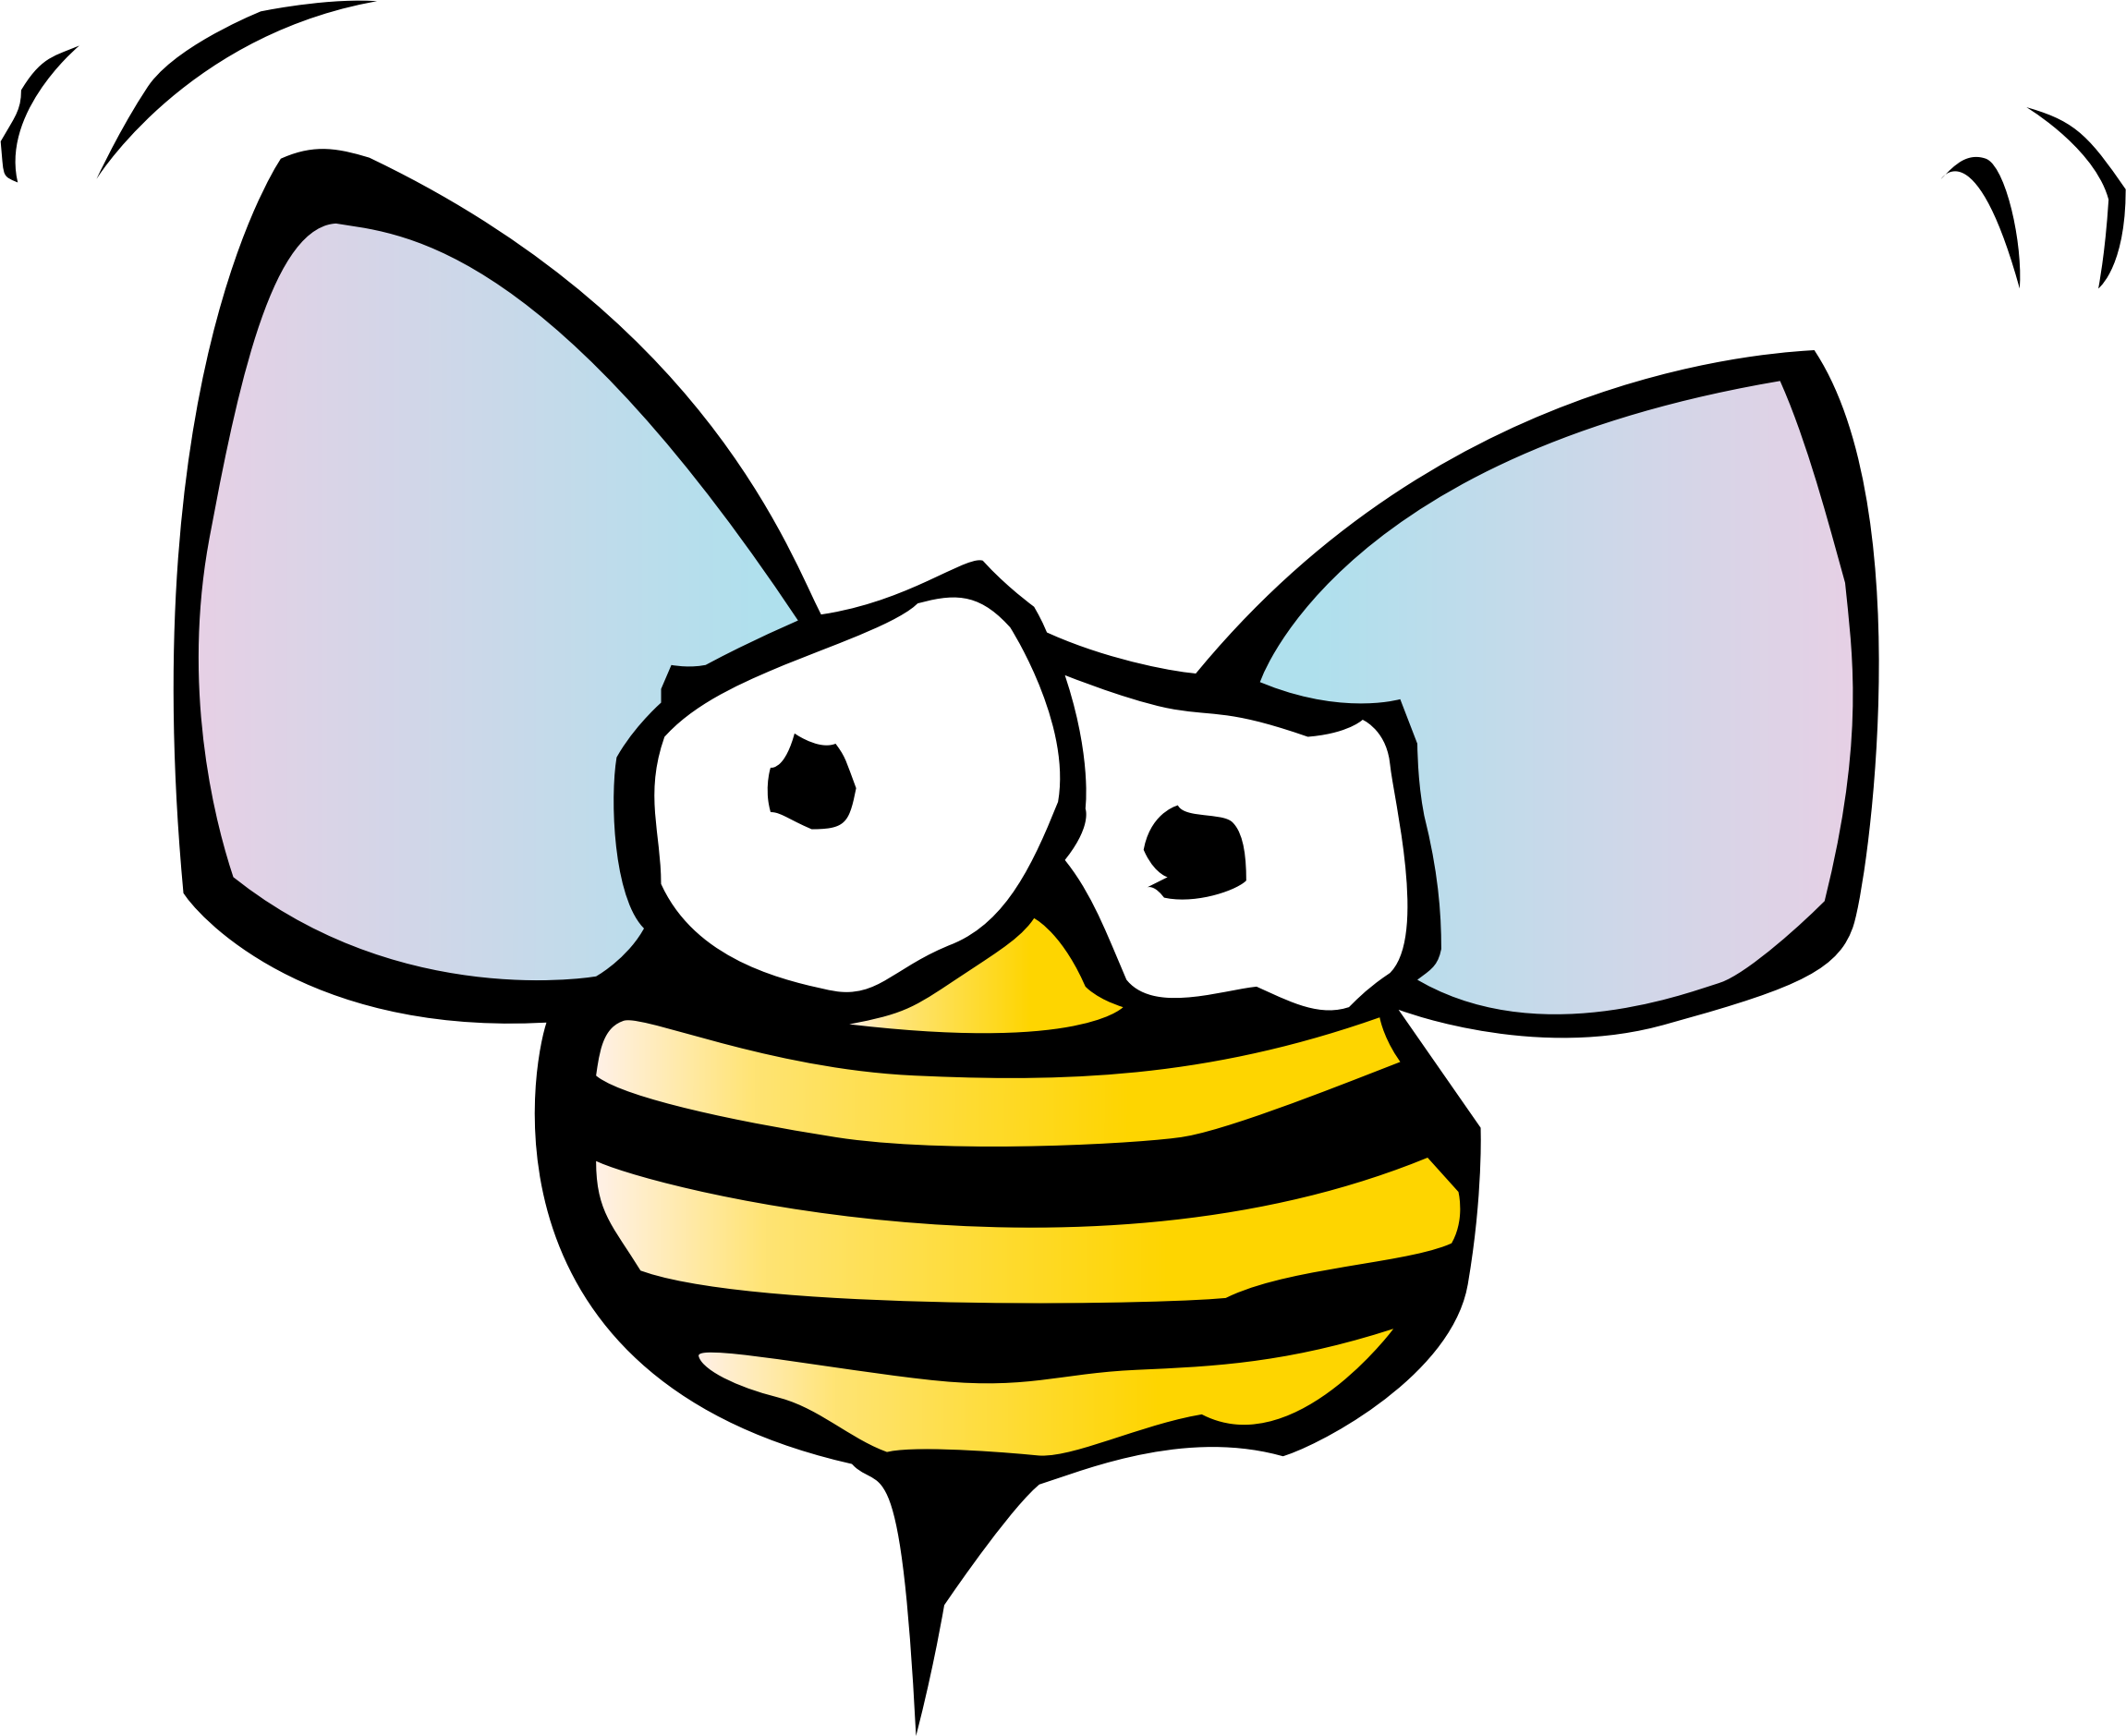 Bee by pianoBrad